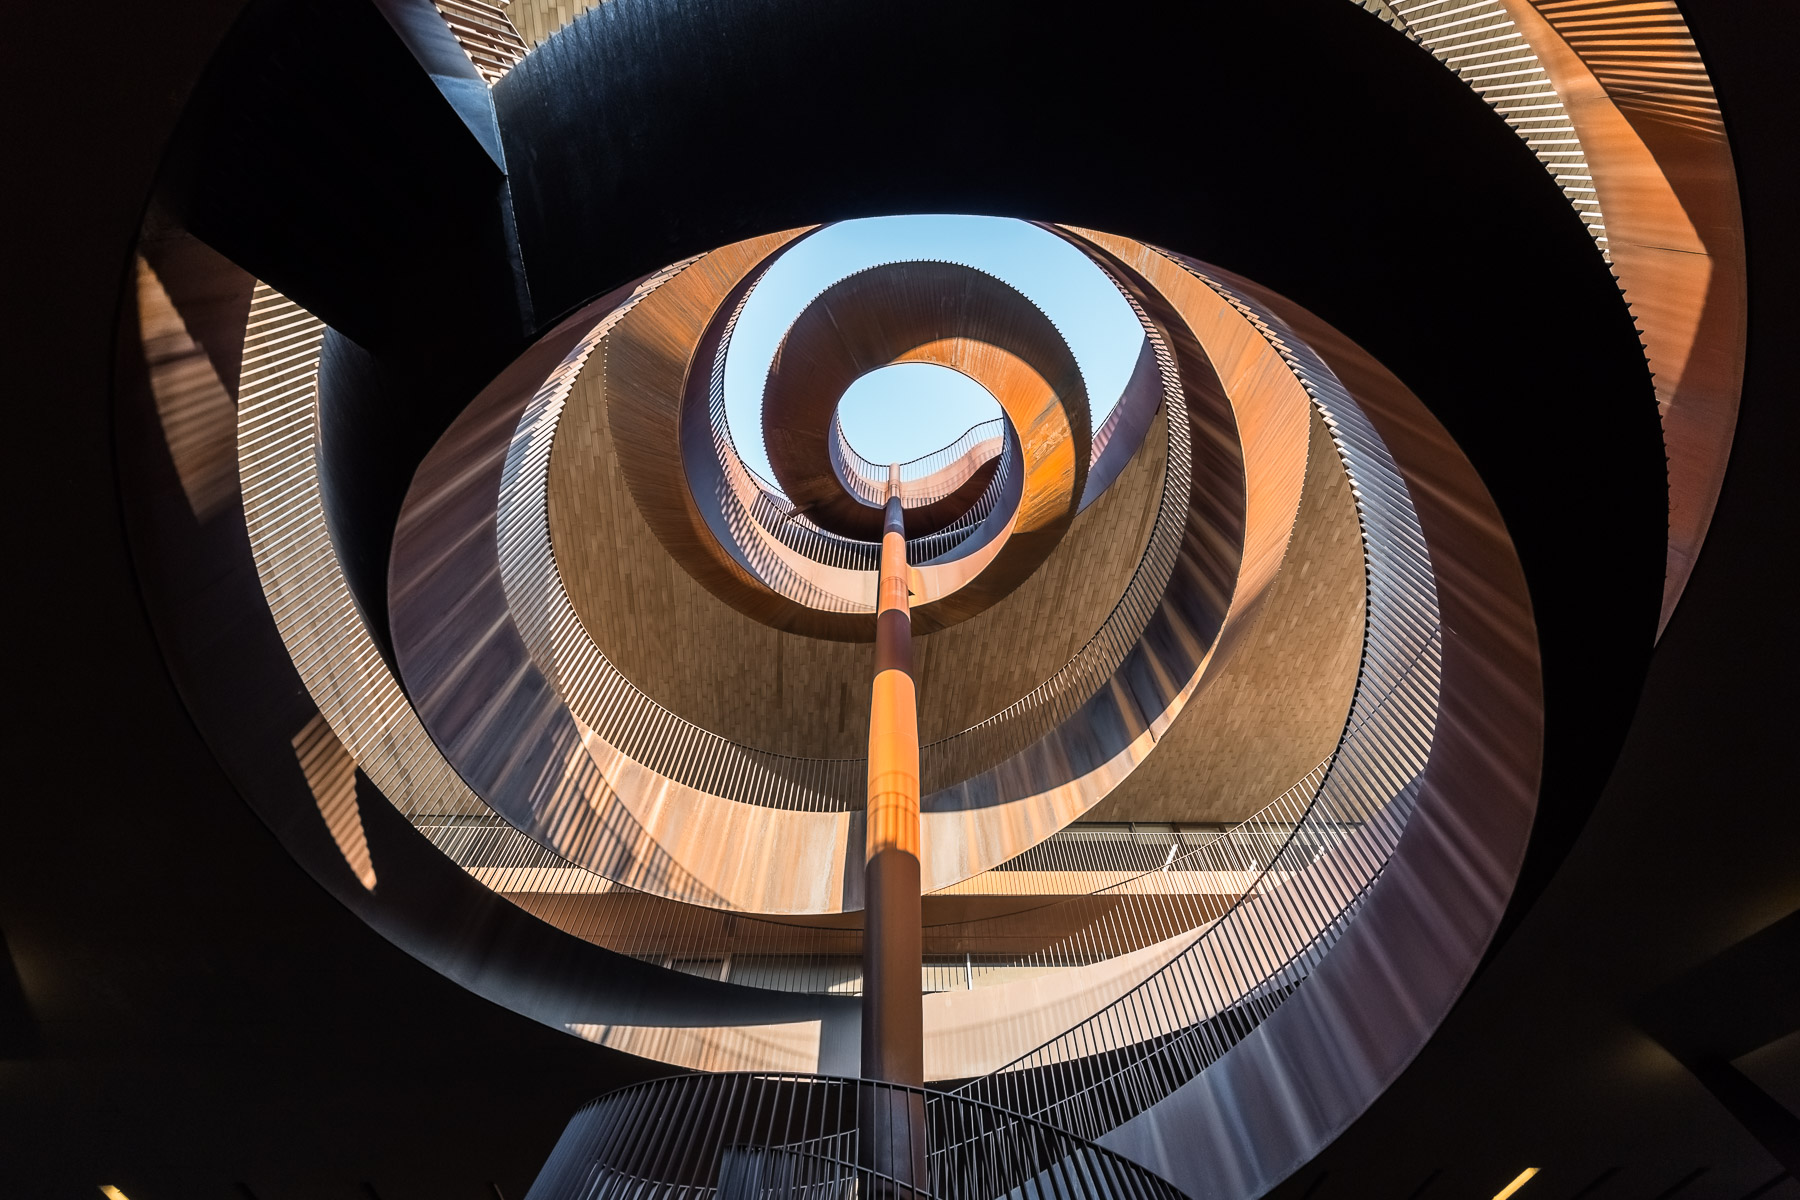 Antinori Winery at Bargino Florence - Photographed for Surface Media LLC © Giorgio Magini